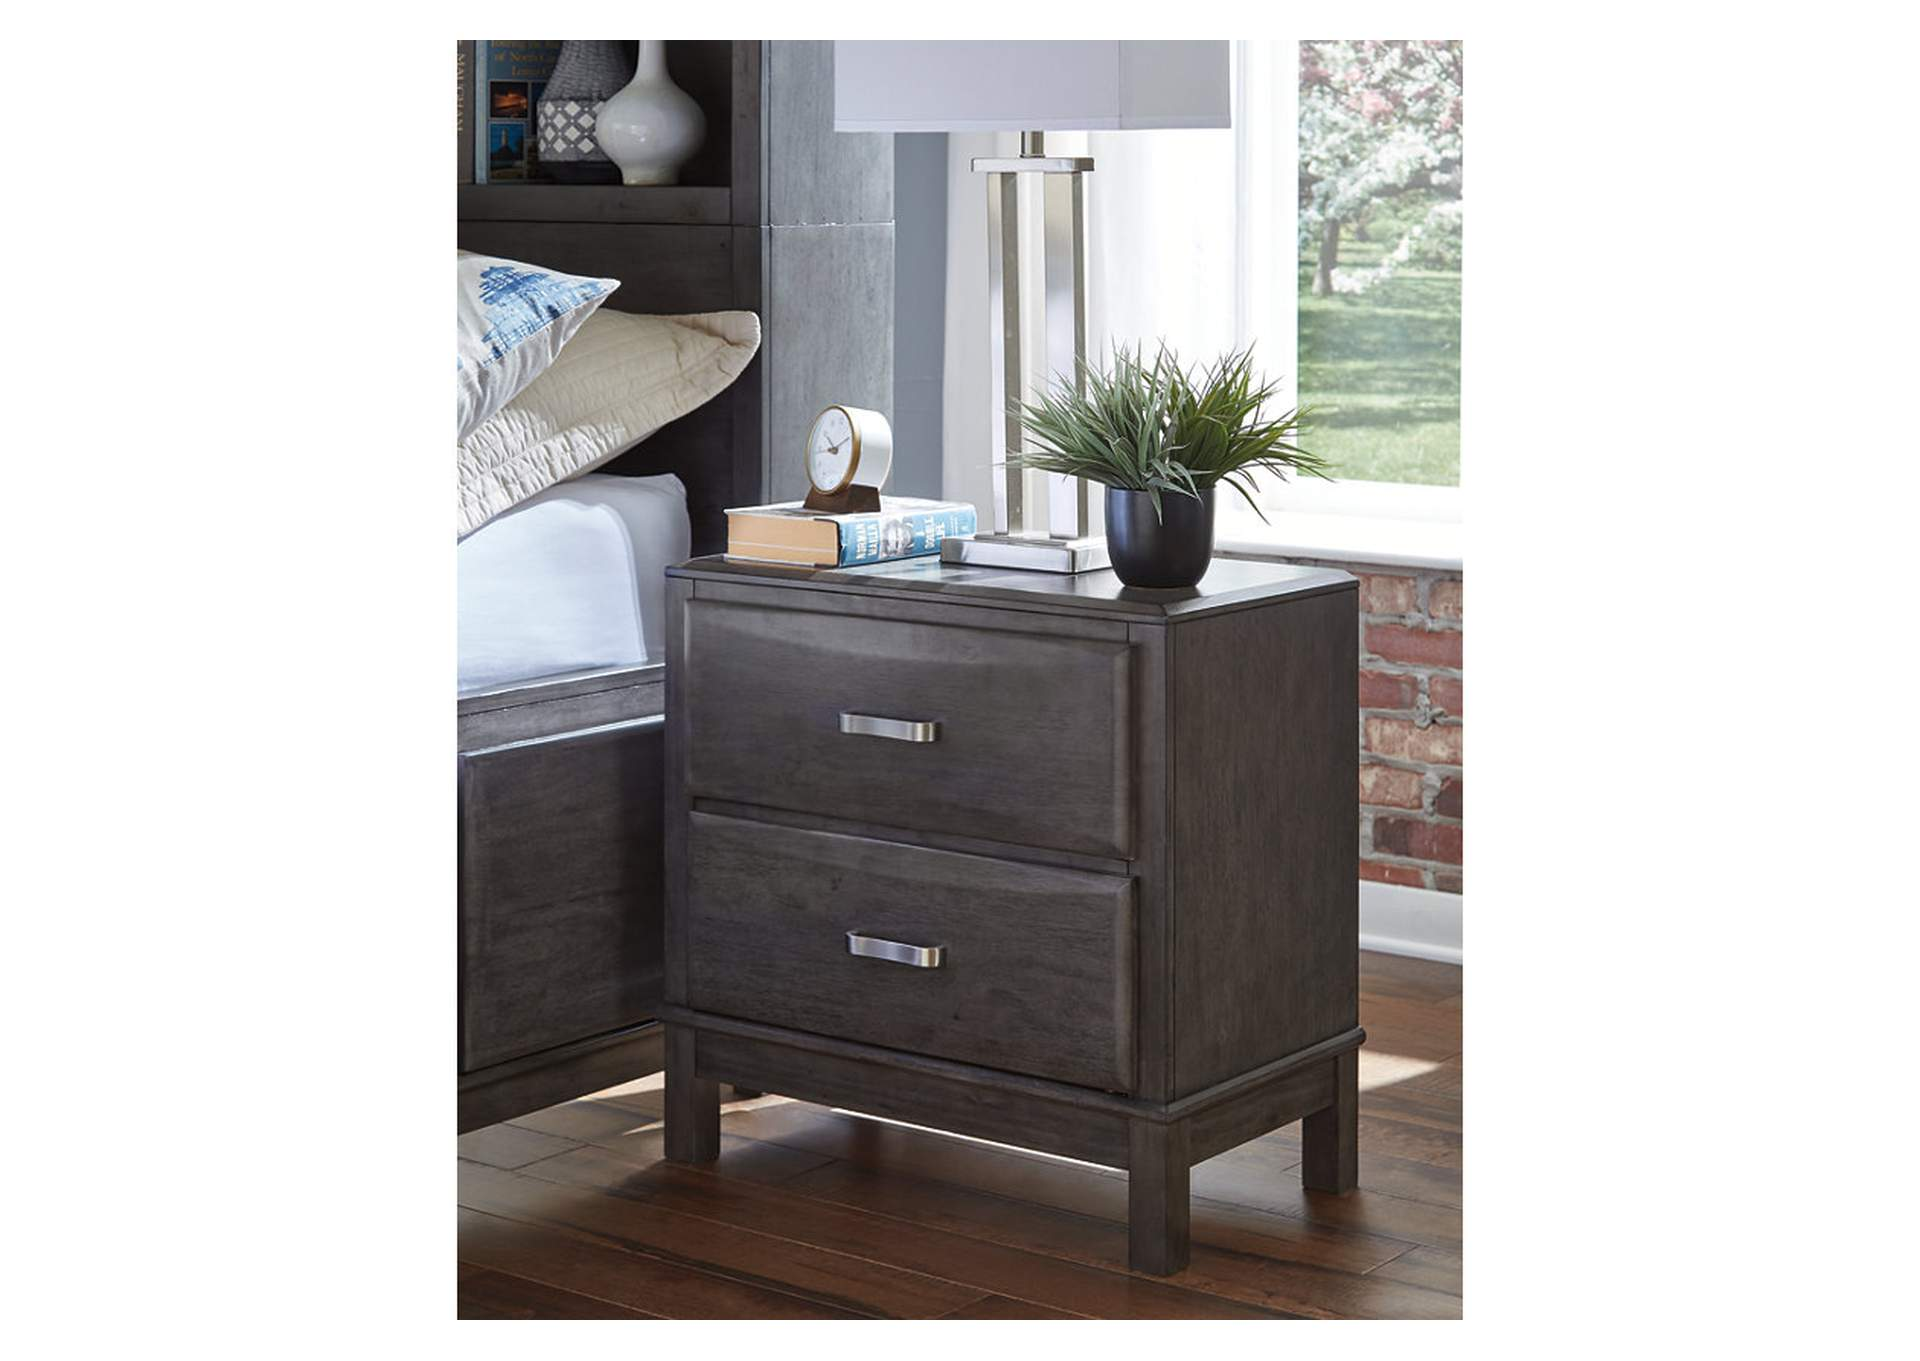 Caitbrook Gray Nightstand,Signature Design By Ashley